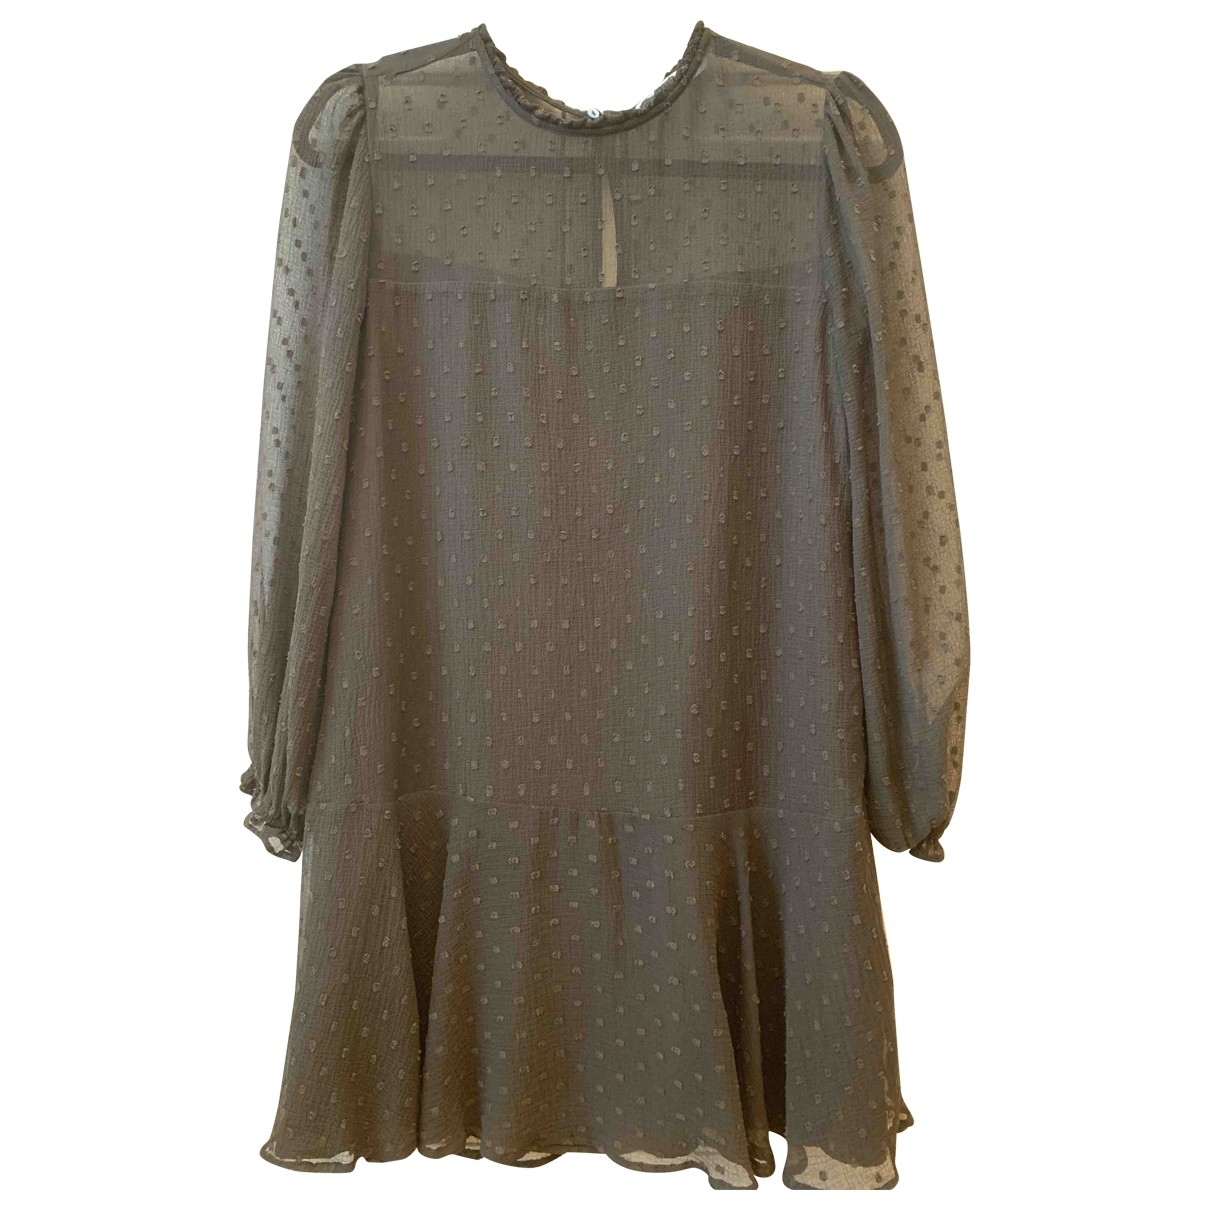 Zara \N Khaki dress for Women S International